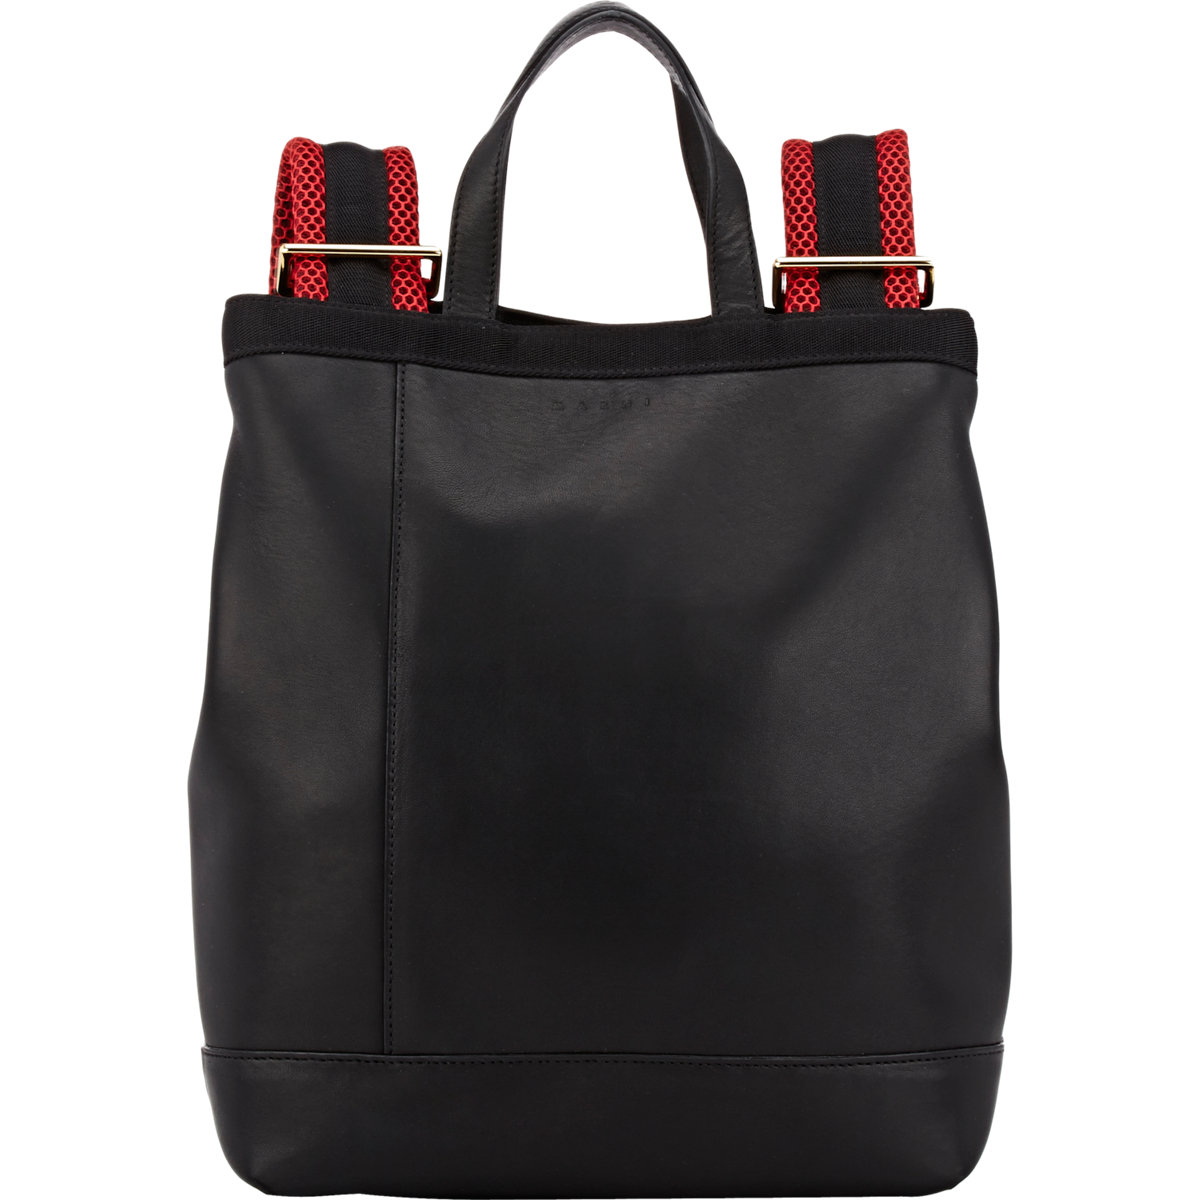 Marni Parachute Small Backpack in Black | Lyst